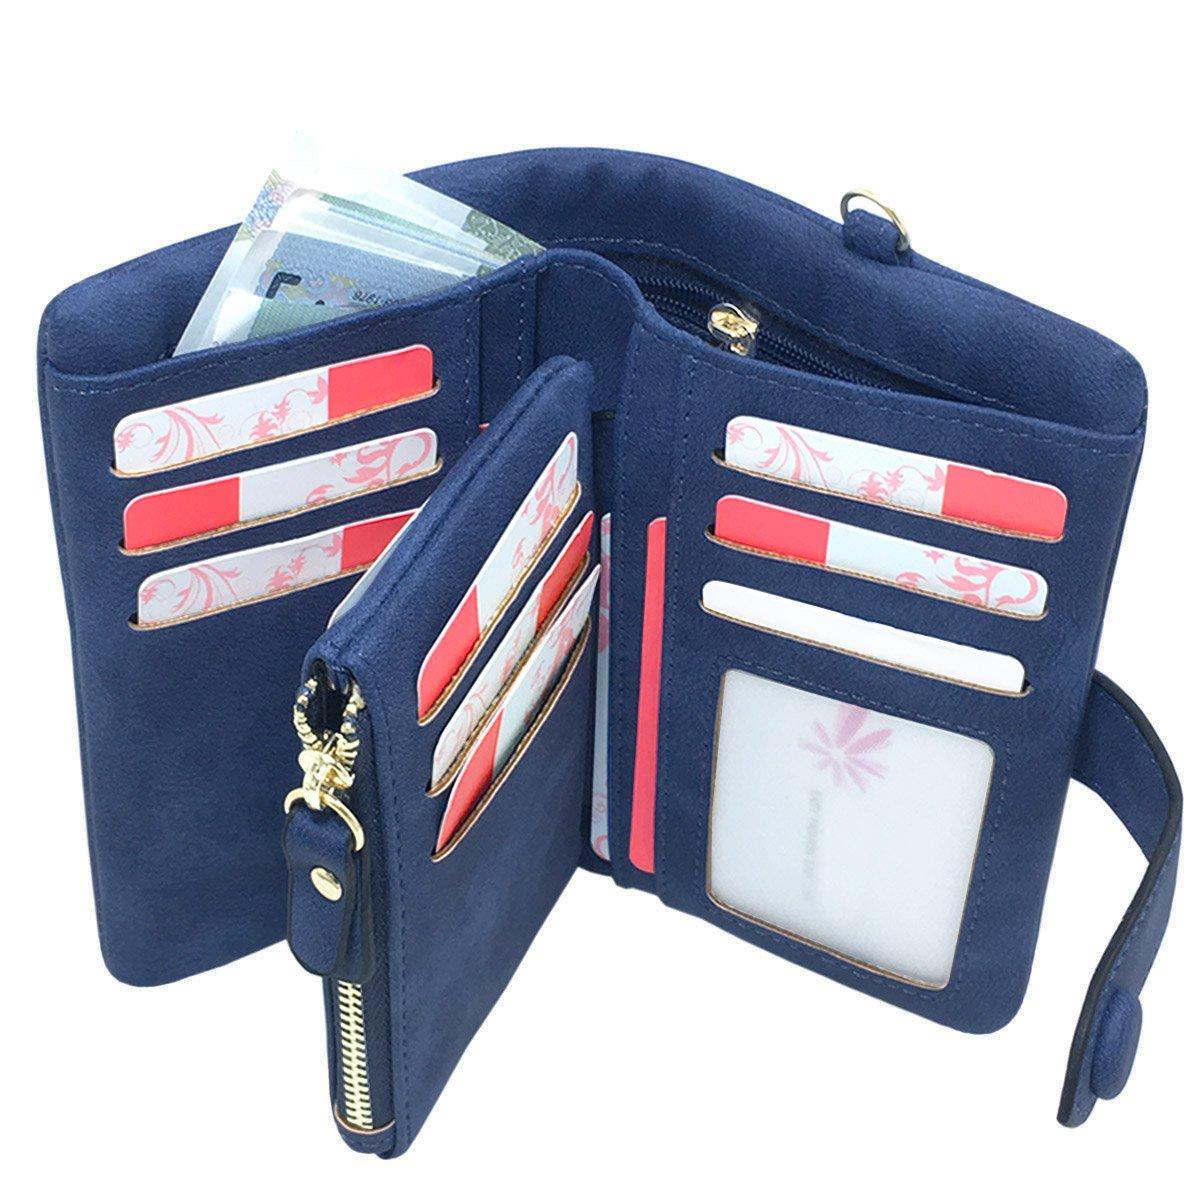 RFID Leather Wallet for women Ladies Wristlet Clutch Large Capacity Zipper Purse Card Holder Organizer